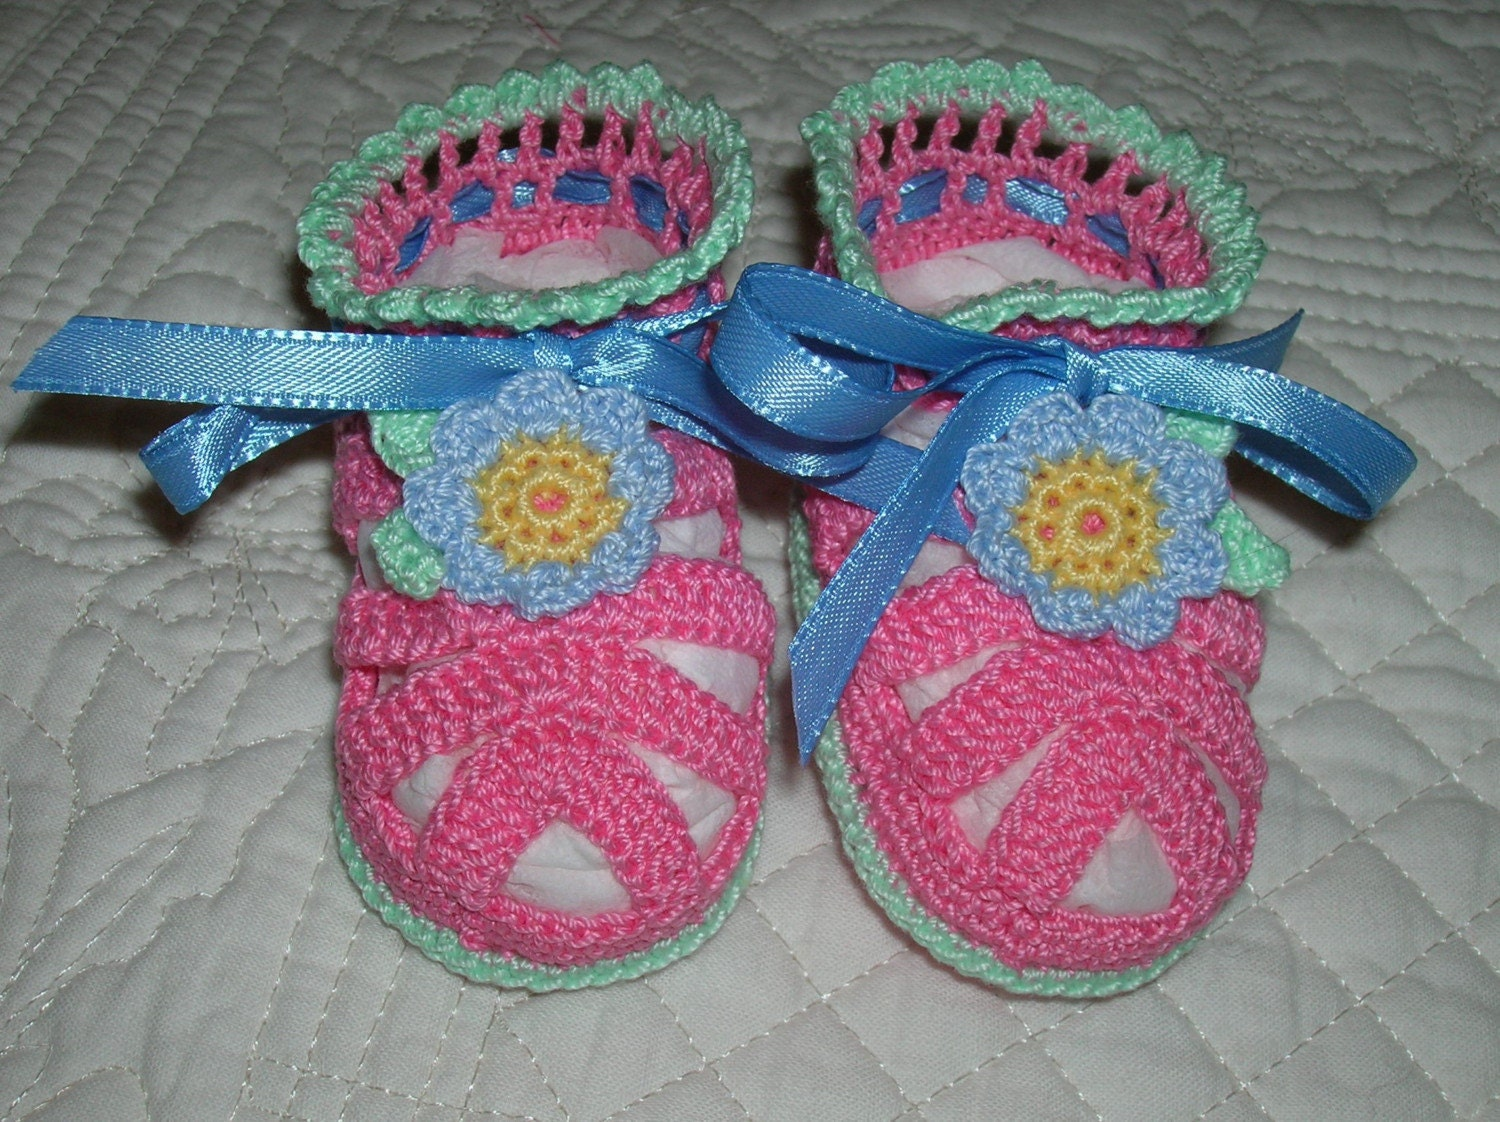 Pink Crocheted Baby Sandals